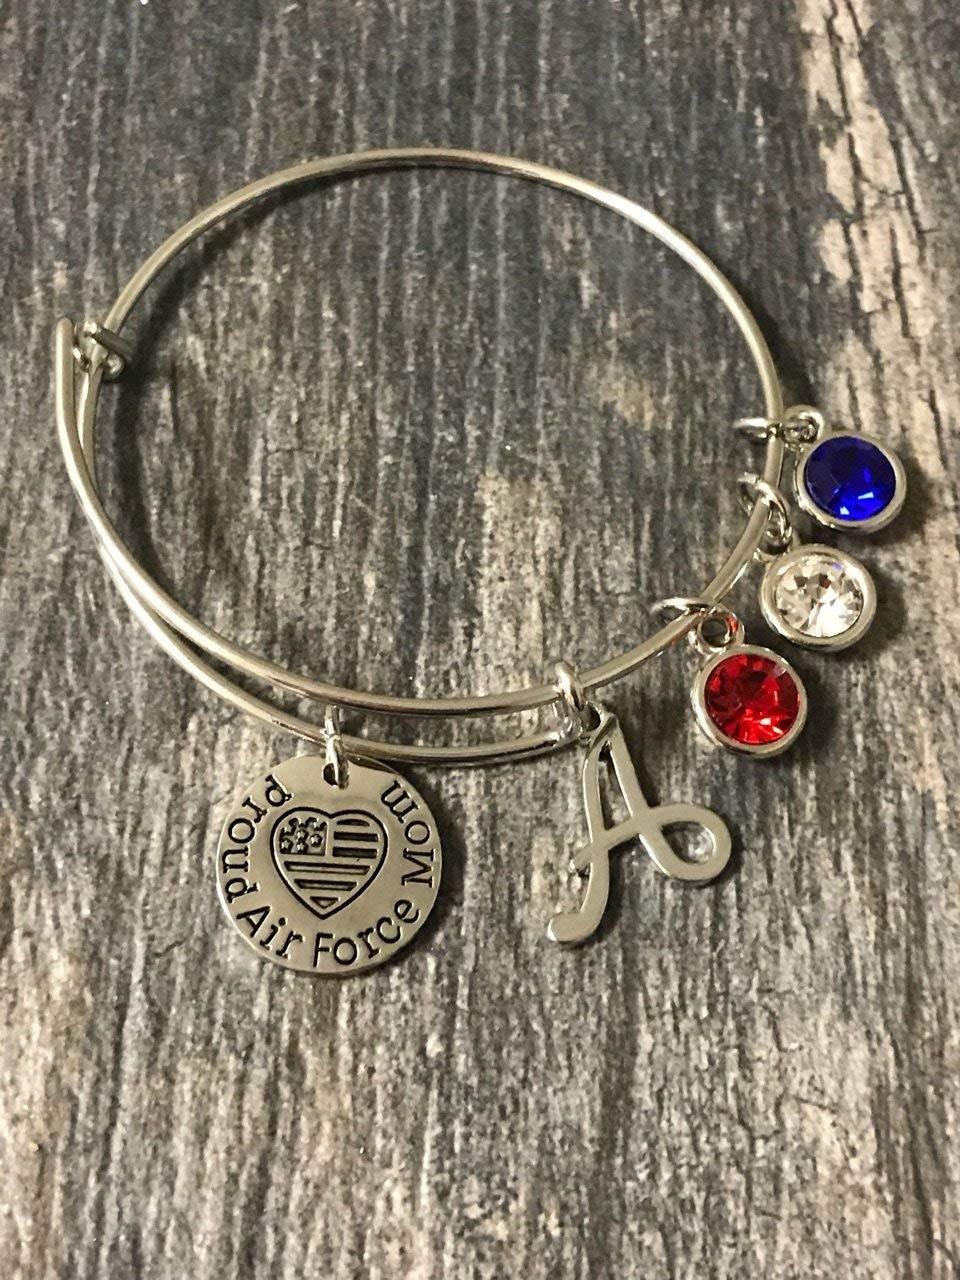 Personalized Airforce Mom Charm Bangle Bracelet with Letter Initial